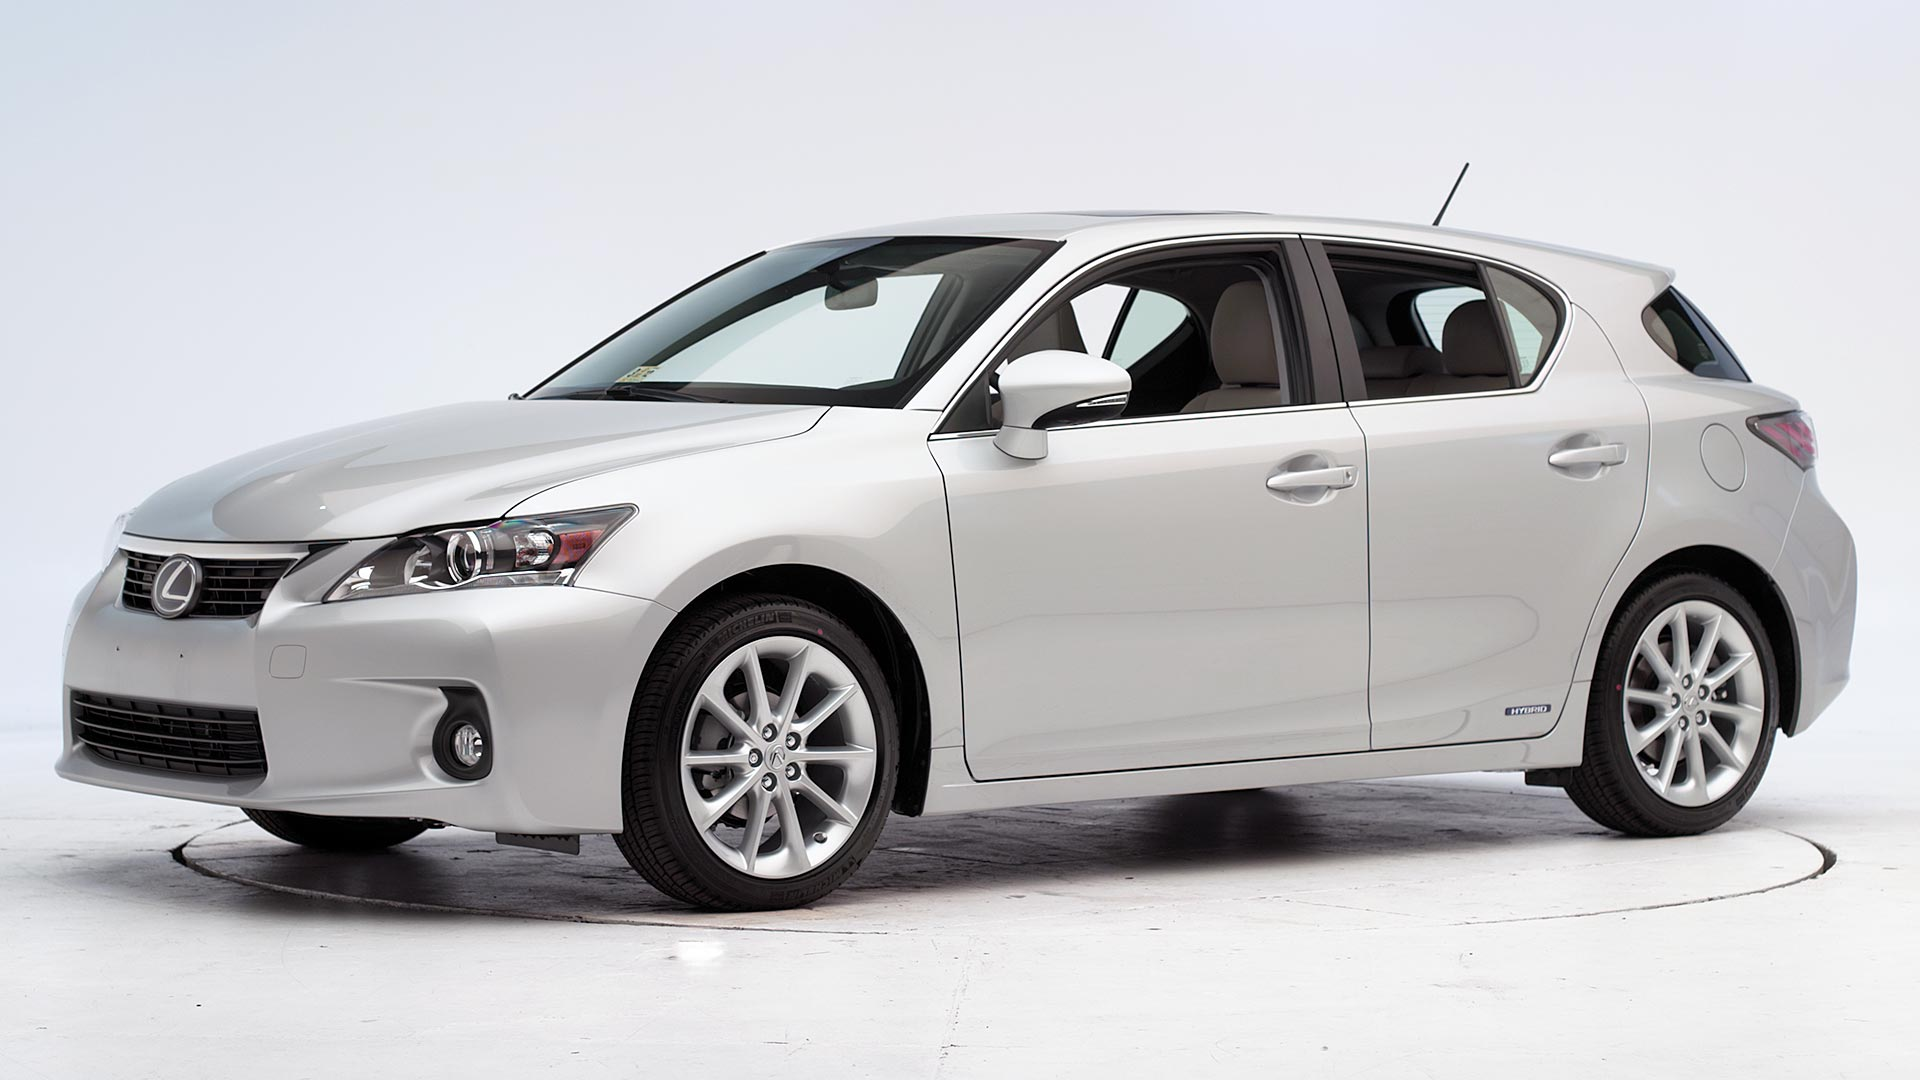 2012 Lexus CT 200h 4-door hatchback